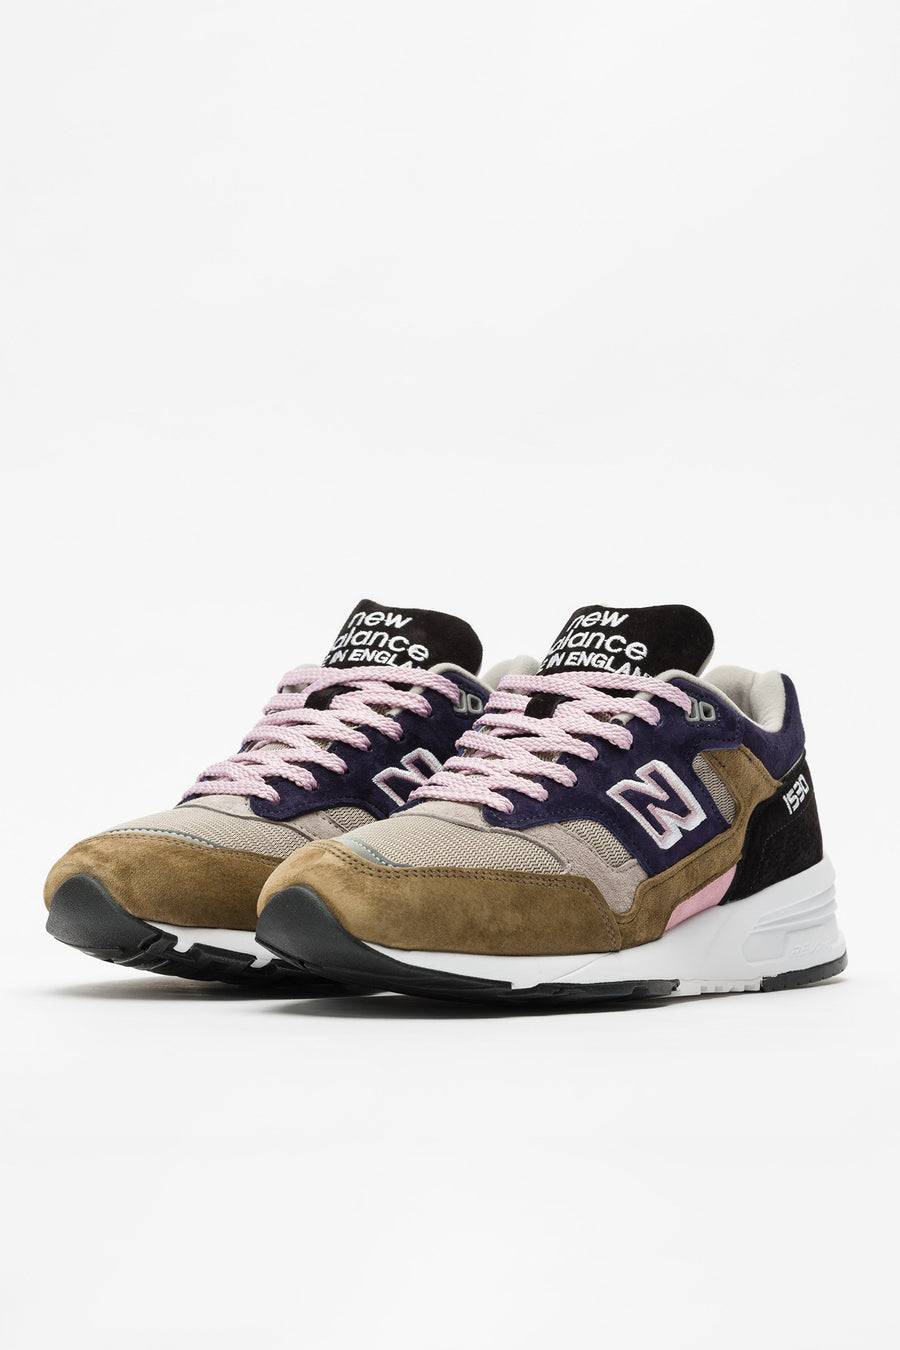 New Balance M1530KGL in Khaki/Grey/Lavender - Notre